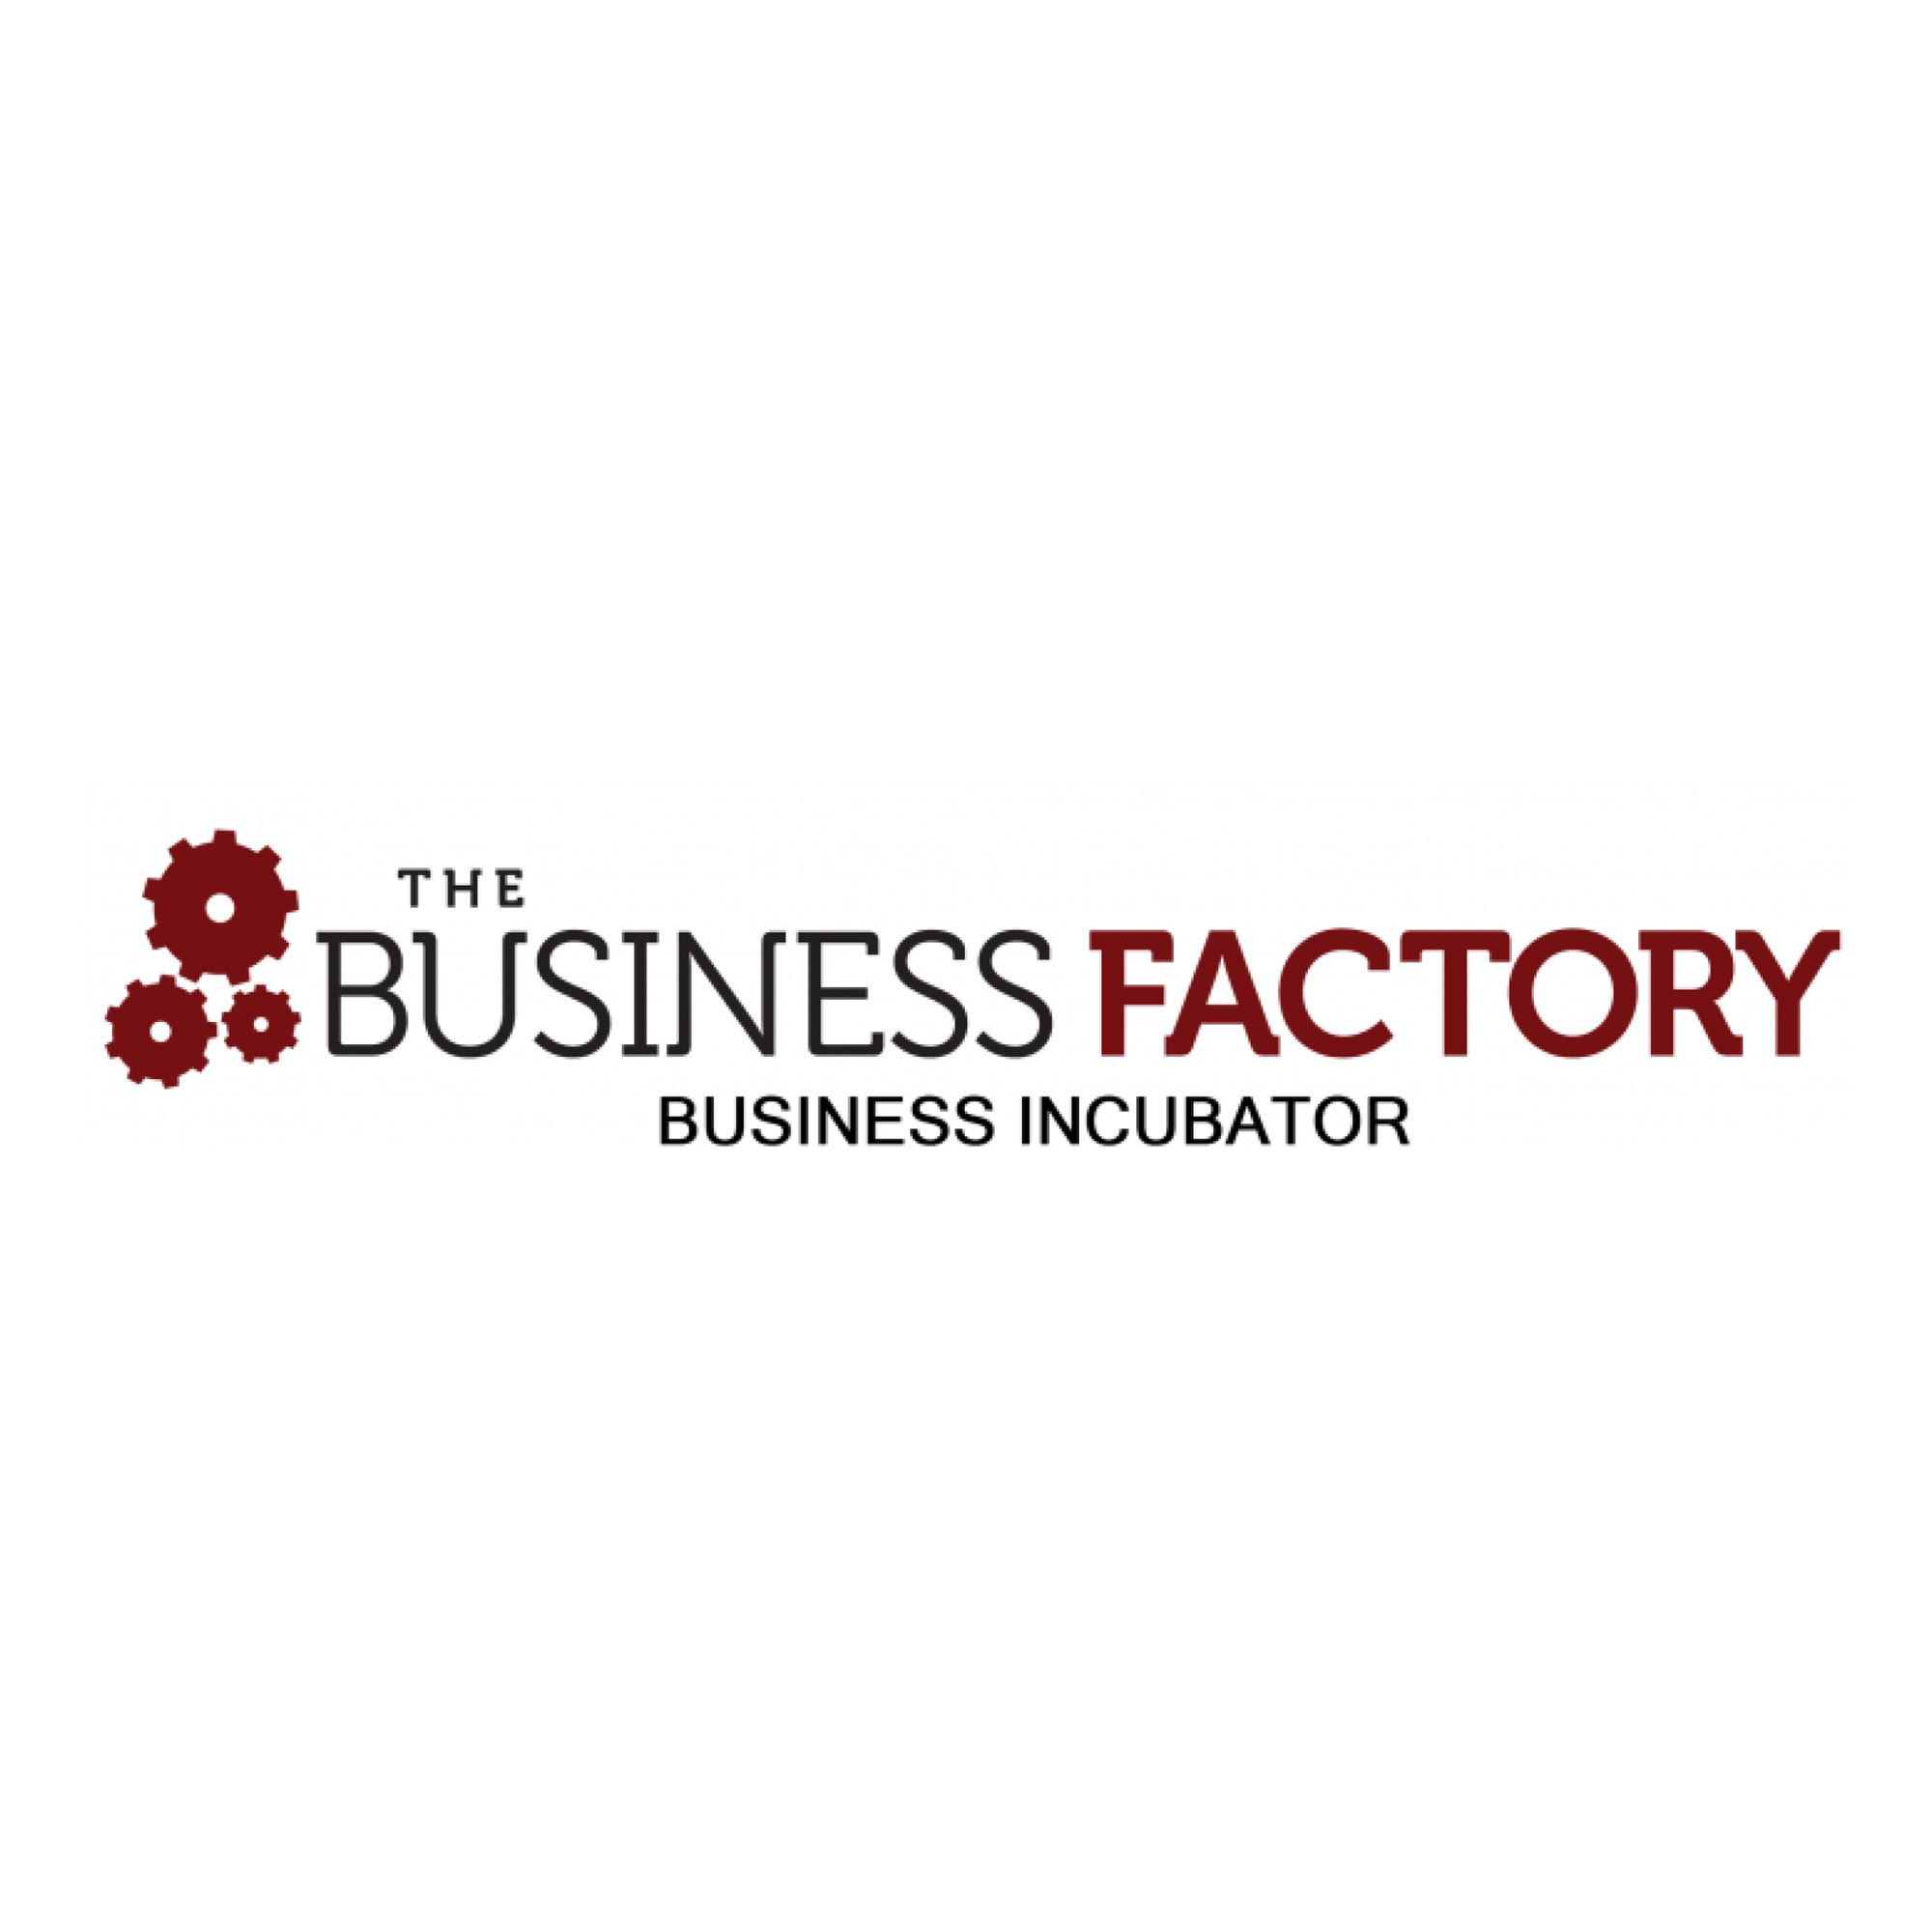 The Business Factory - Business Incubator